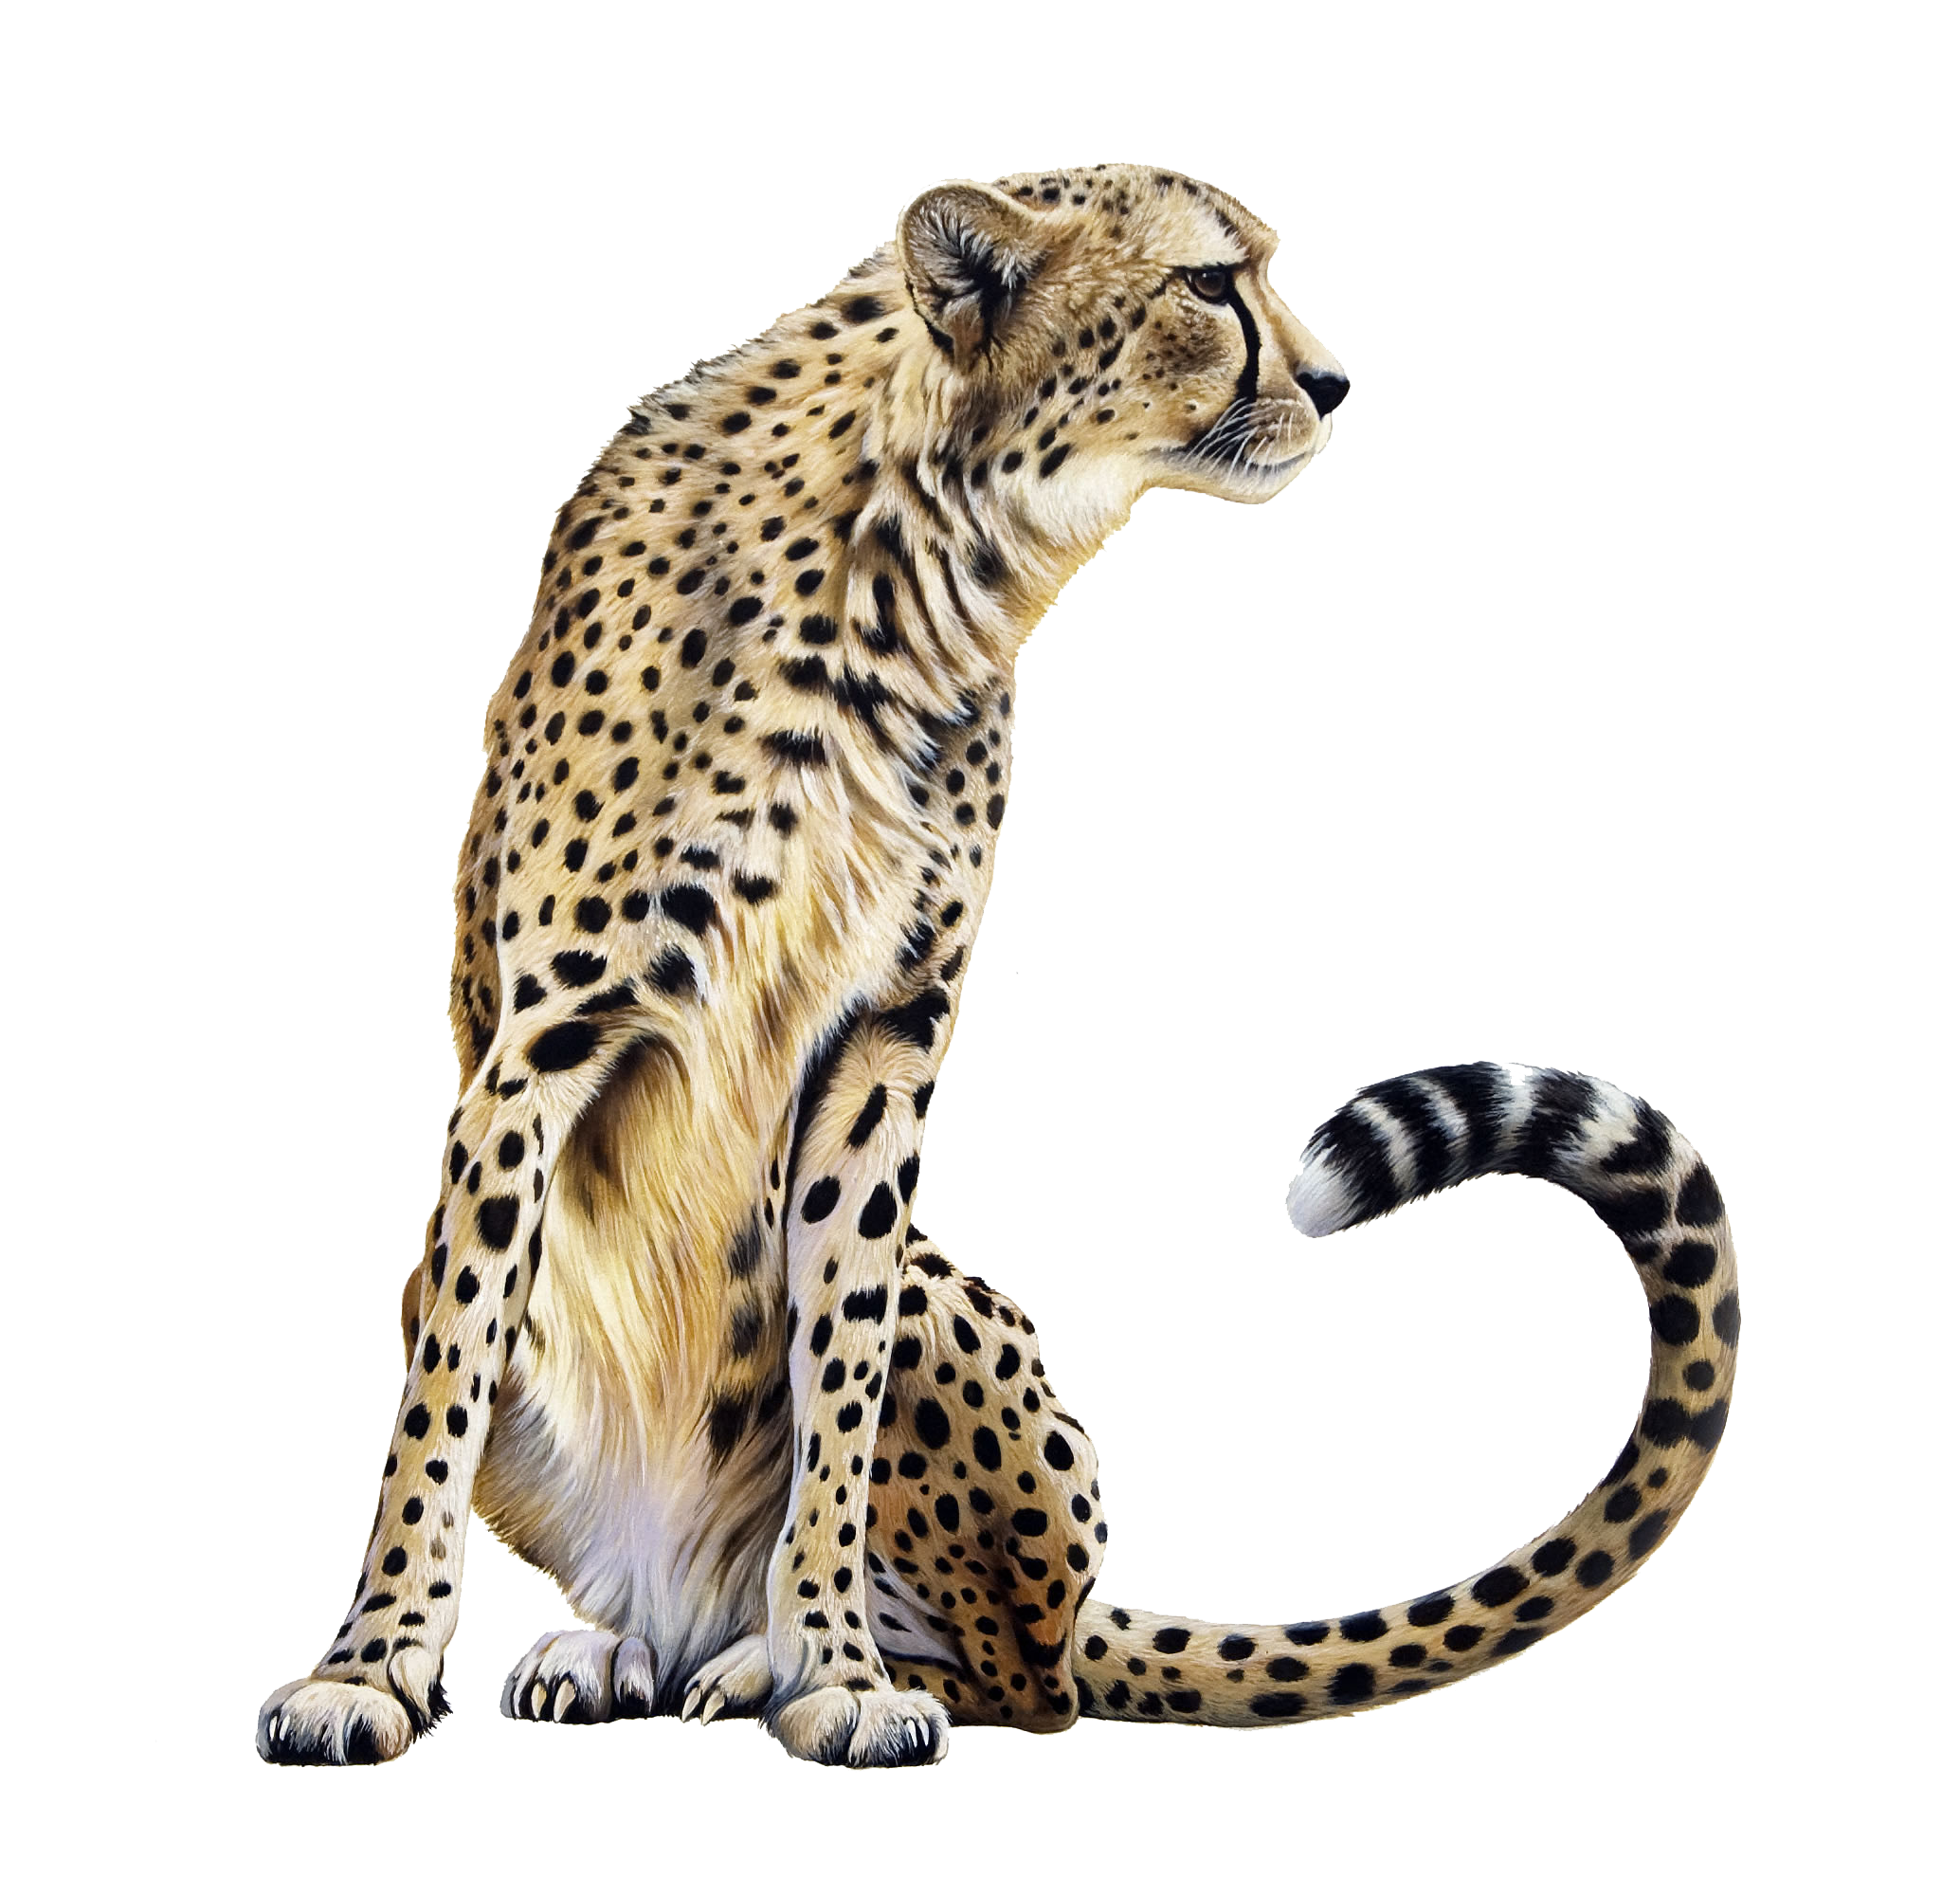 Cheetah Transparent PNG Image